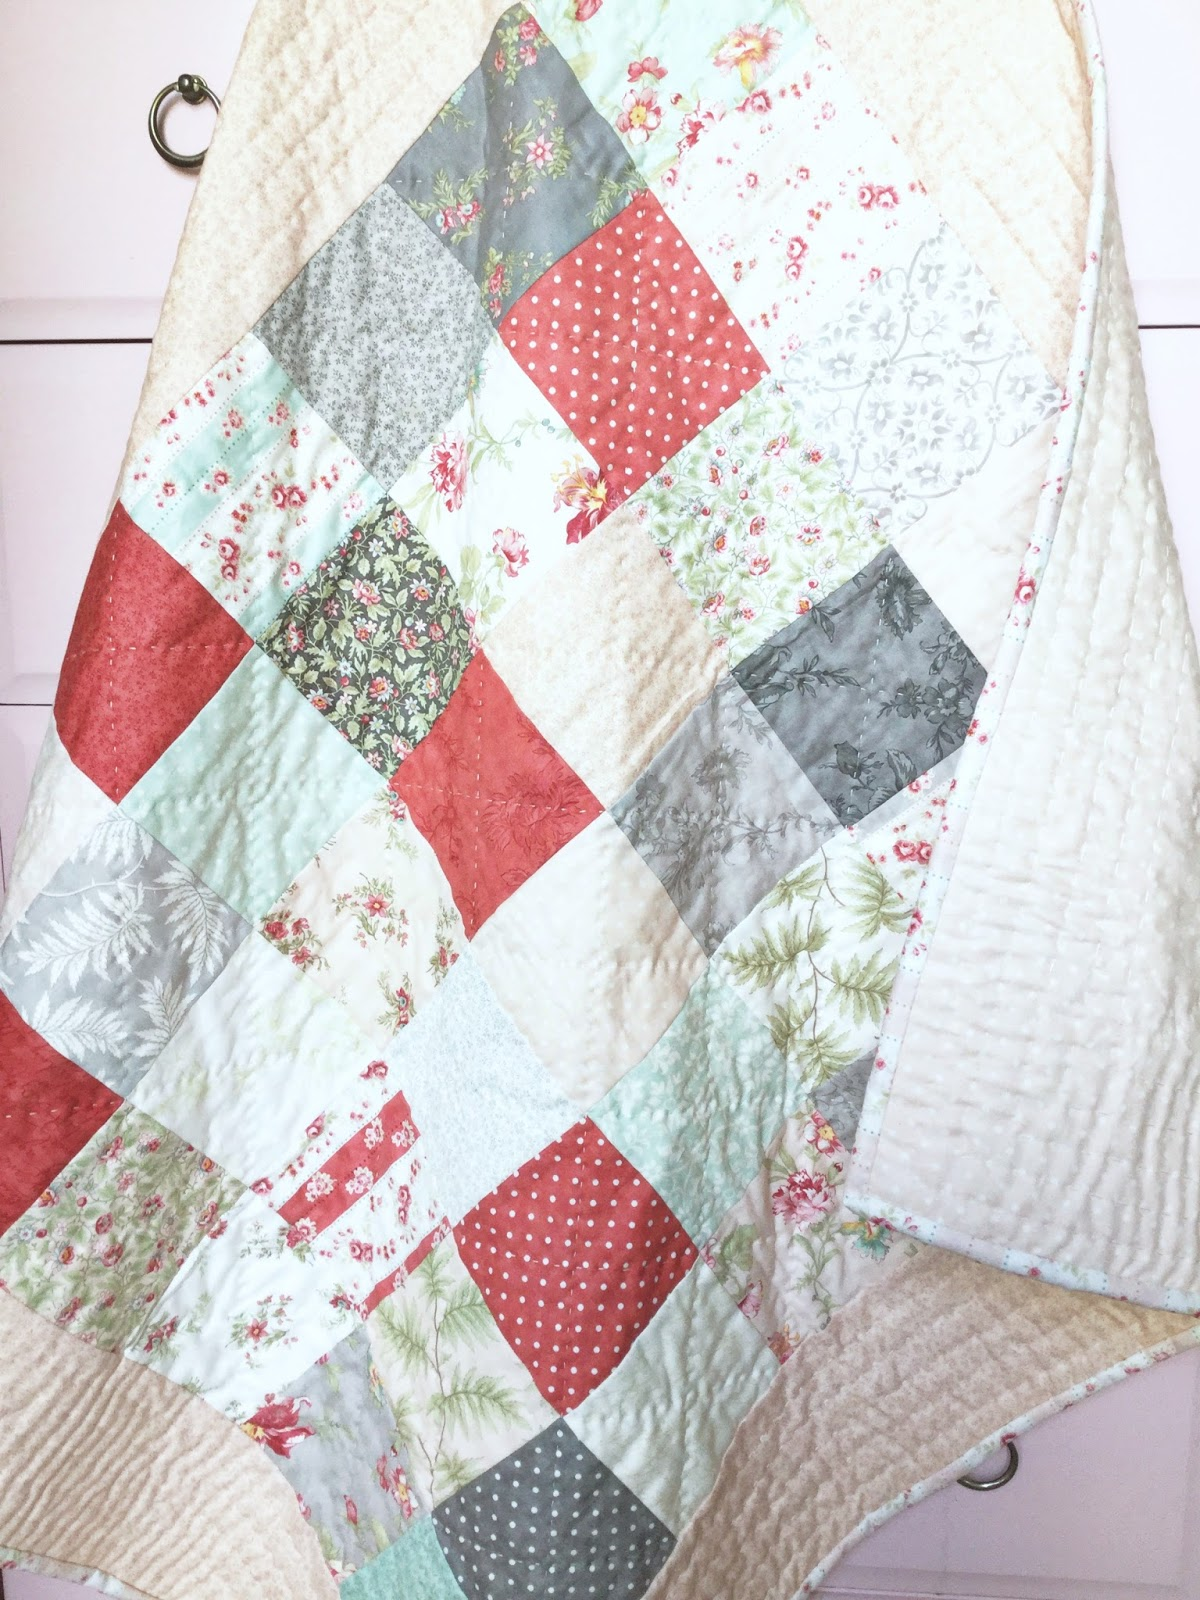 A Little Happy Place: Easy Peasy Charm Square Quilt (Part 1) : charm square quilt pattern - Adamdwight.com